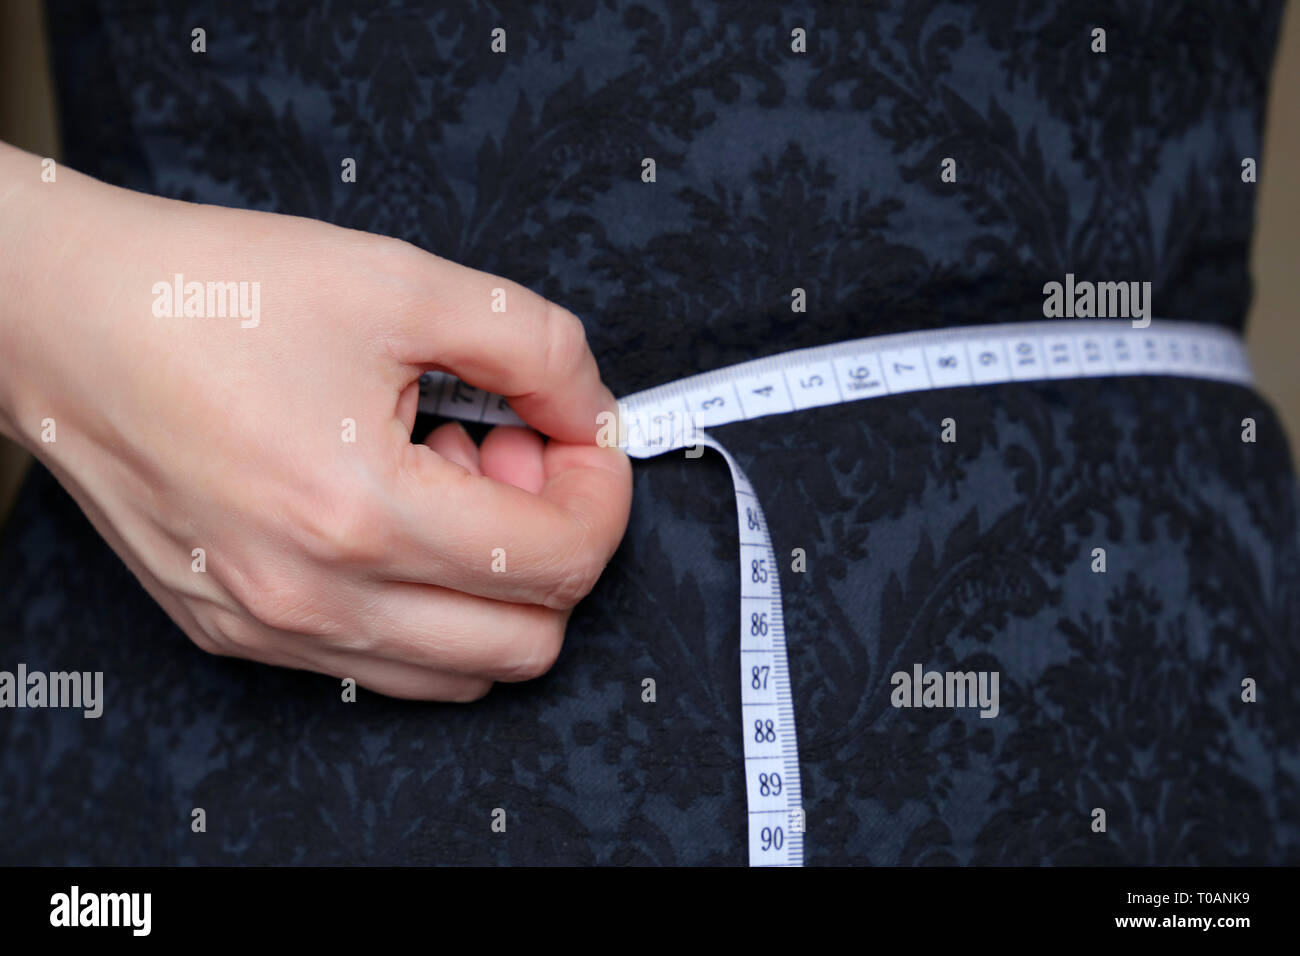 Weight loss, slimming, diet concept. Girl in blue dress with measuring tape around the waist - Stock Image